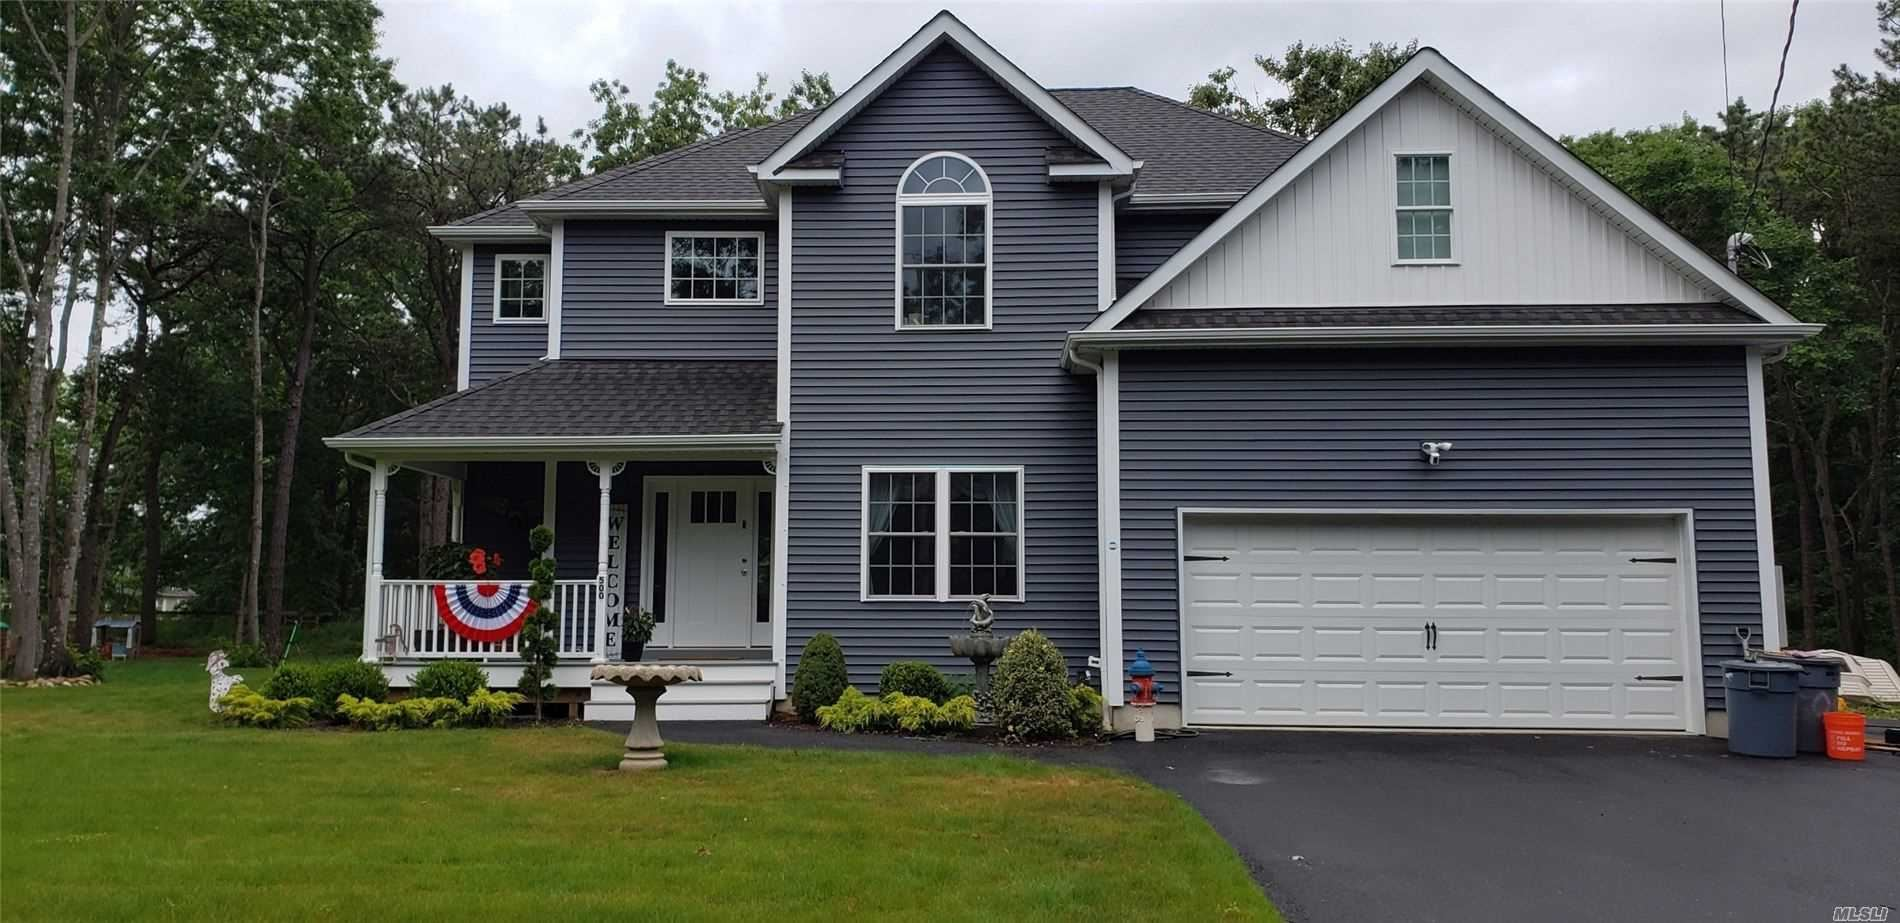 500 Weeks Ave, Manorville, NY 11949 - MLS#: 3229553